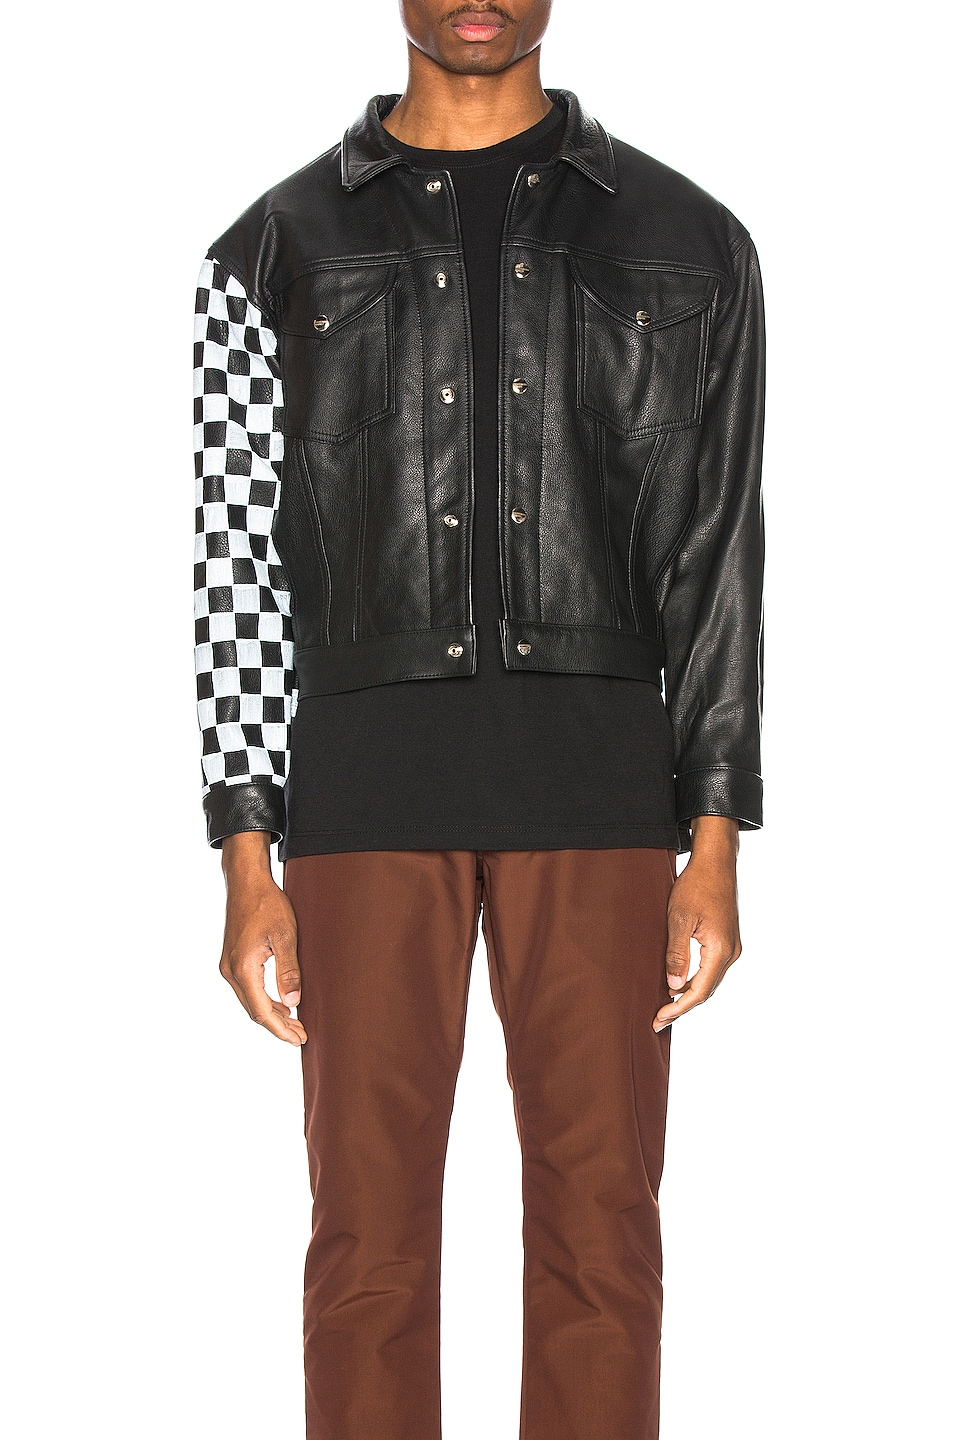 Image 1 of Enfants Riches Deprimes Checkered Sleeve Leather Jacket in Black & White